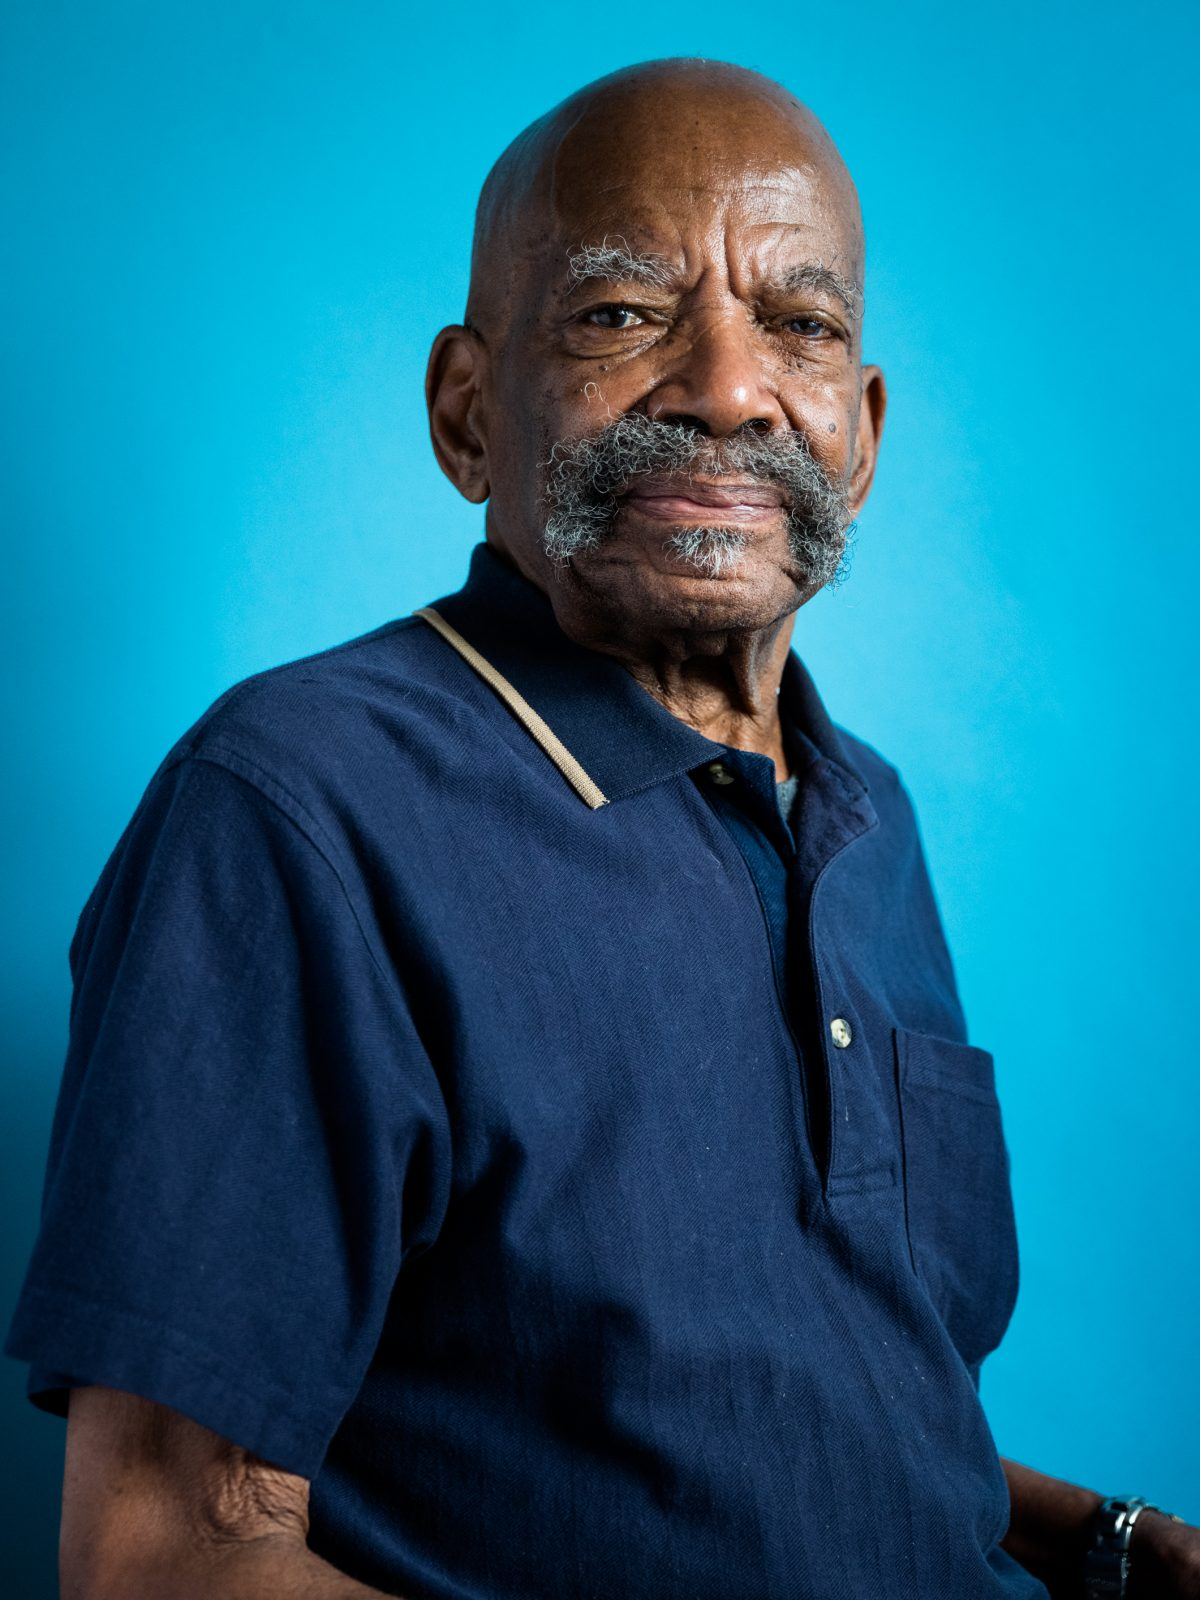 ALFORD GARDNER: MARCH 2018 Alford Gardner, currently 92, is one of the tiny number (estimated at no more than 10) of survivors from 'Empire Windrush' which arrived in Tilbury on June 22nd 1948.